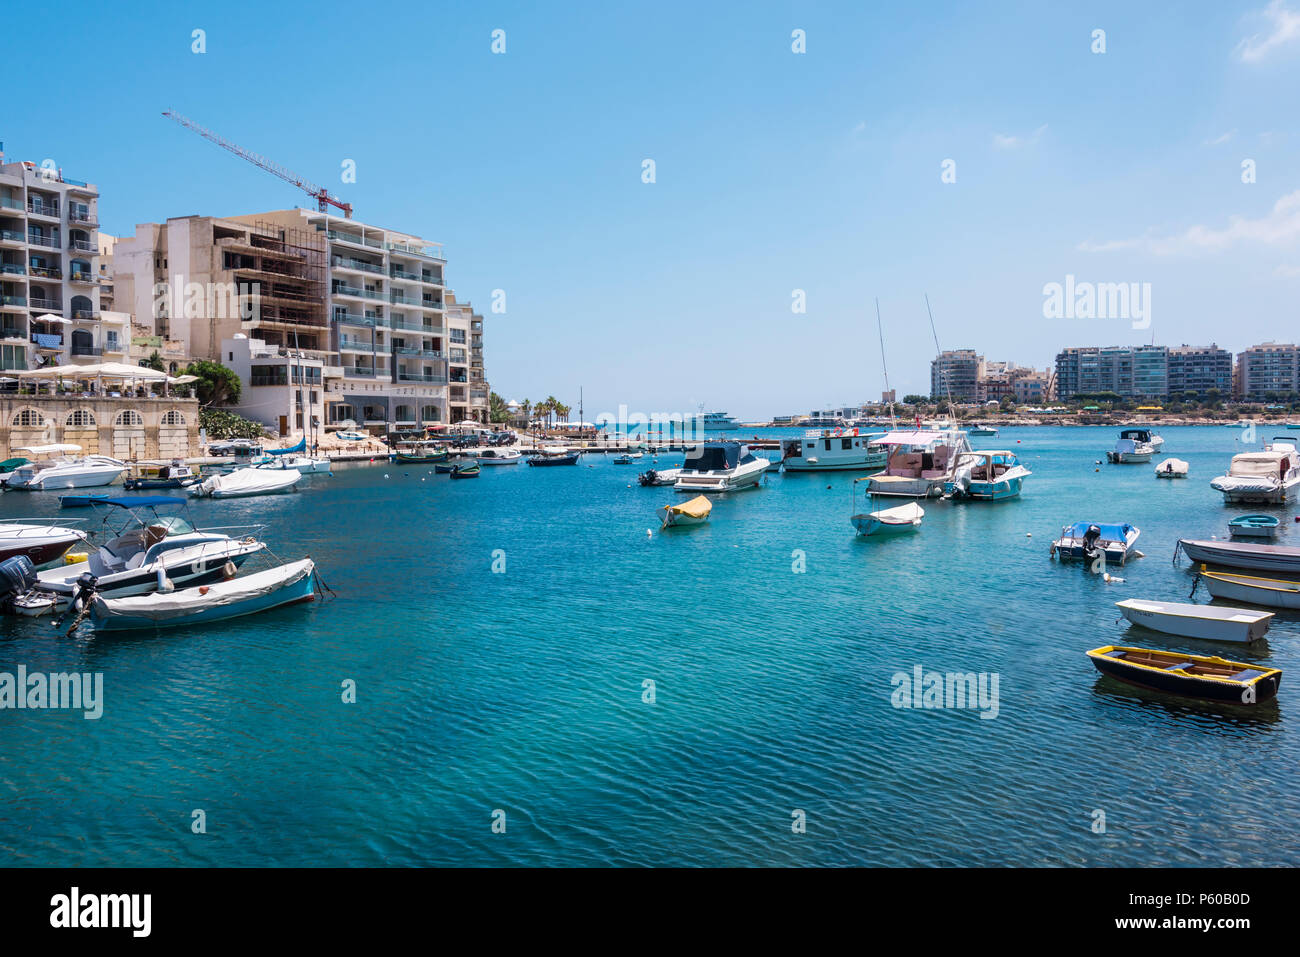 Rowing boats, yachts and cabin cruisers in Spinola Bay, St. Julian's, Malta - Stock Image